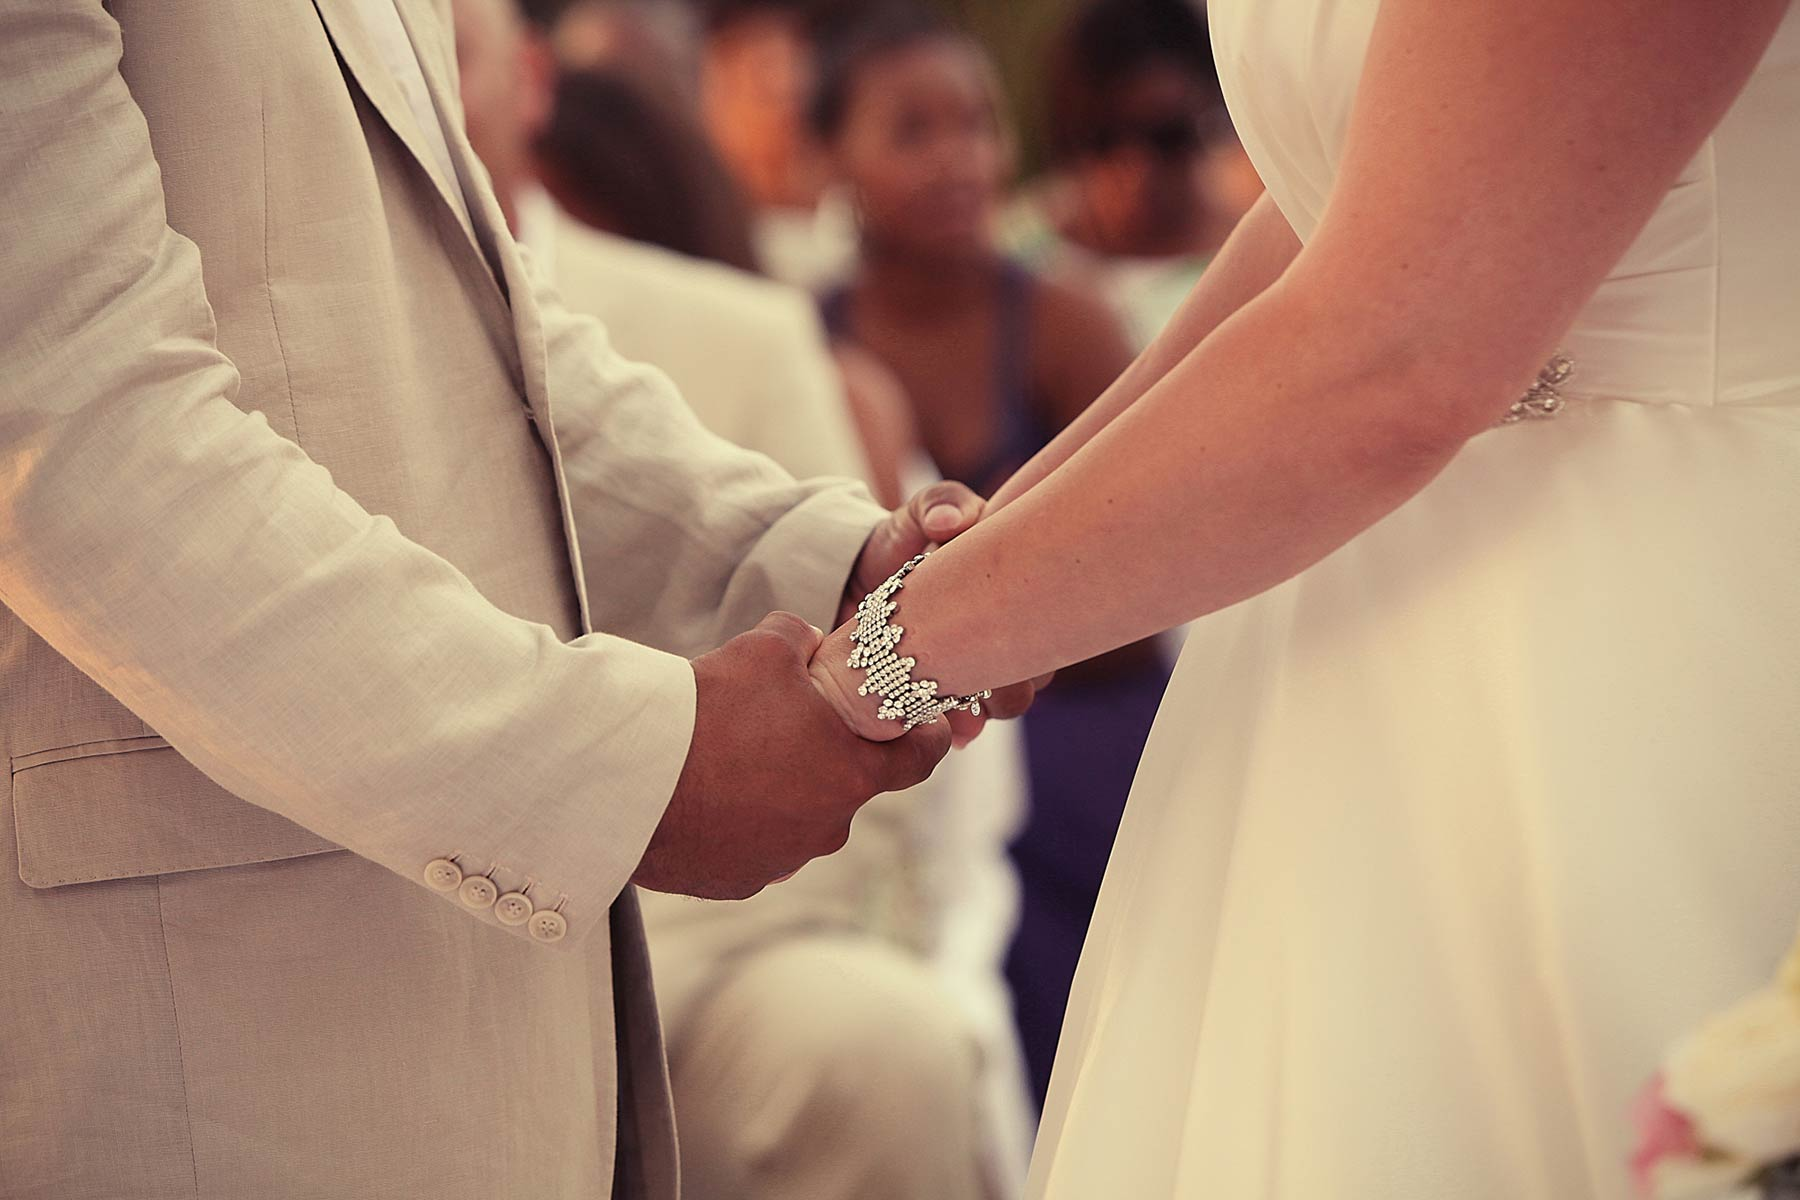 Legal Documents for Weddings in Italy